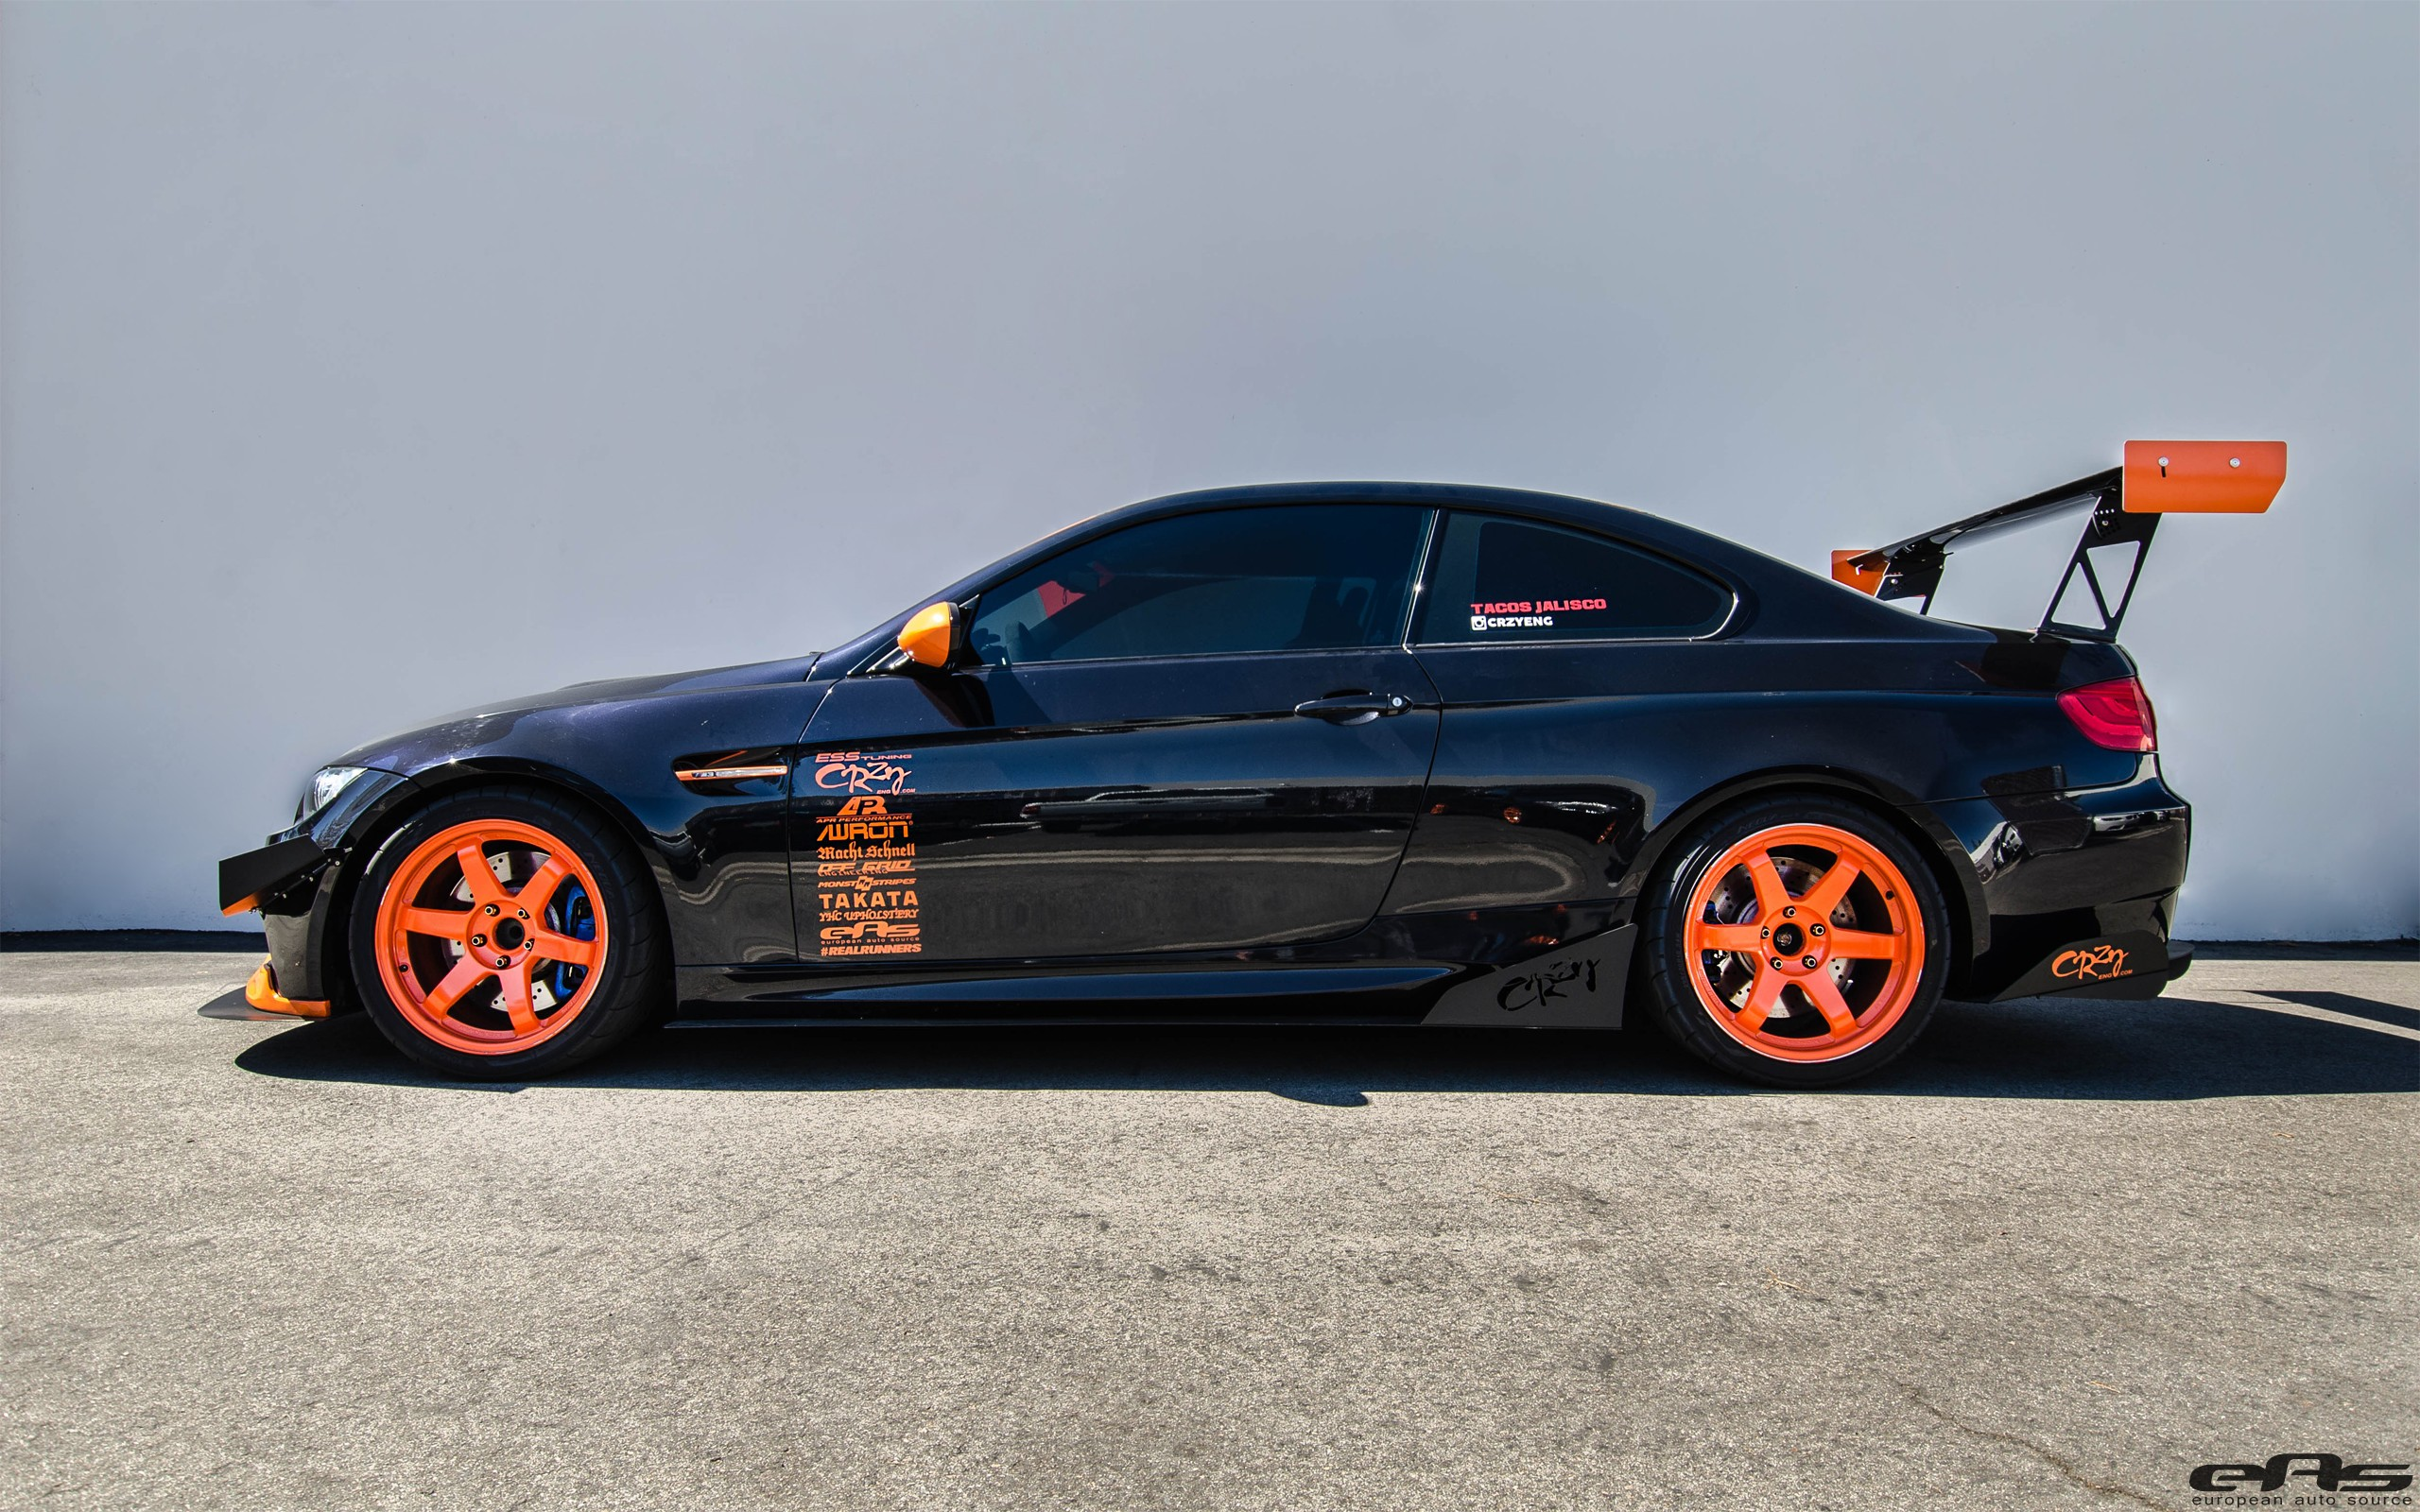 This Heavily Tuned BMW M3 Is Someones Daily Driver